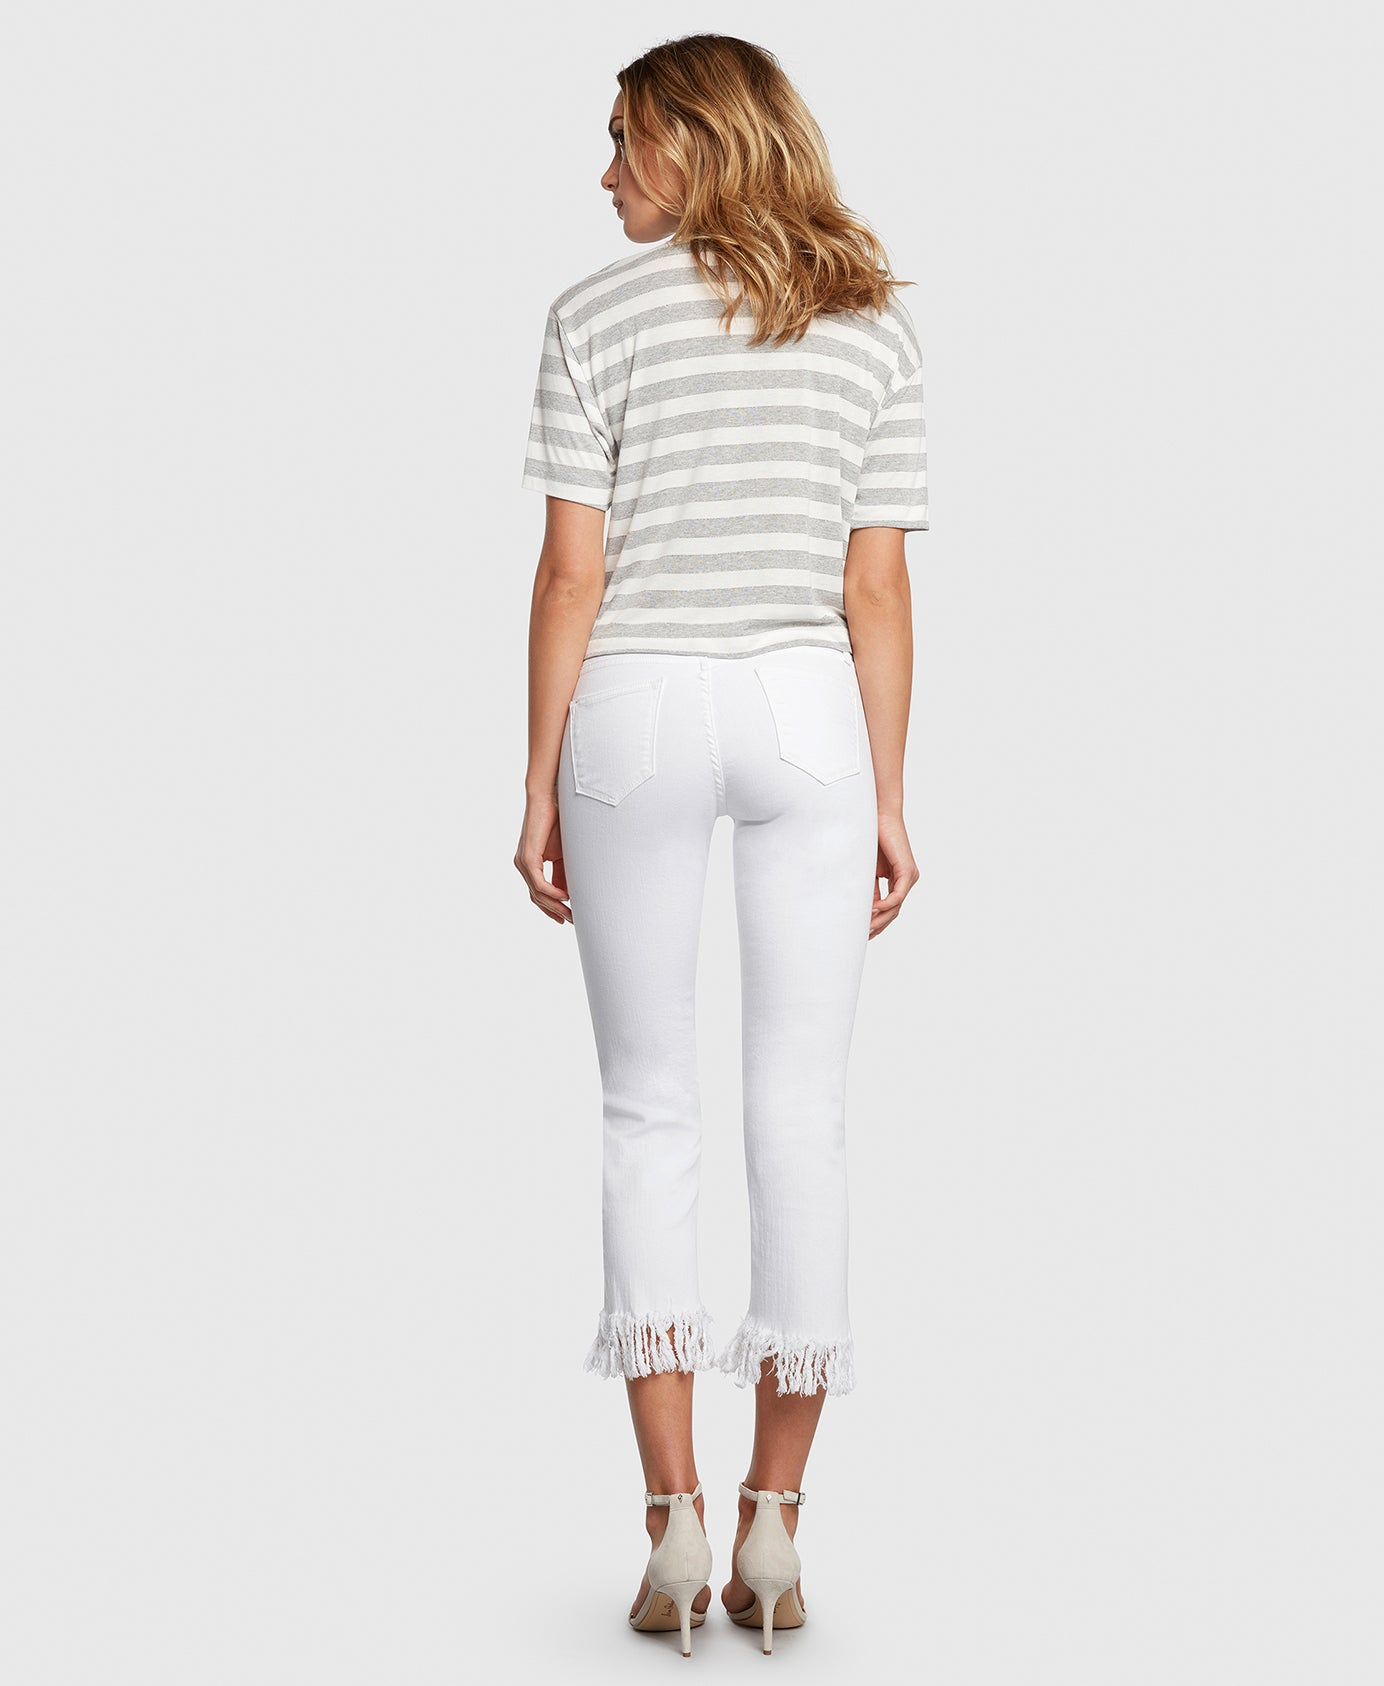 Principle mid rise OPTIMIST in Magnolia white jeans back